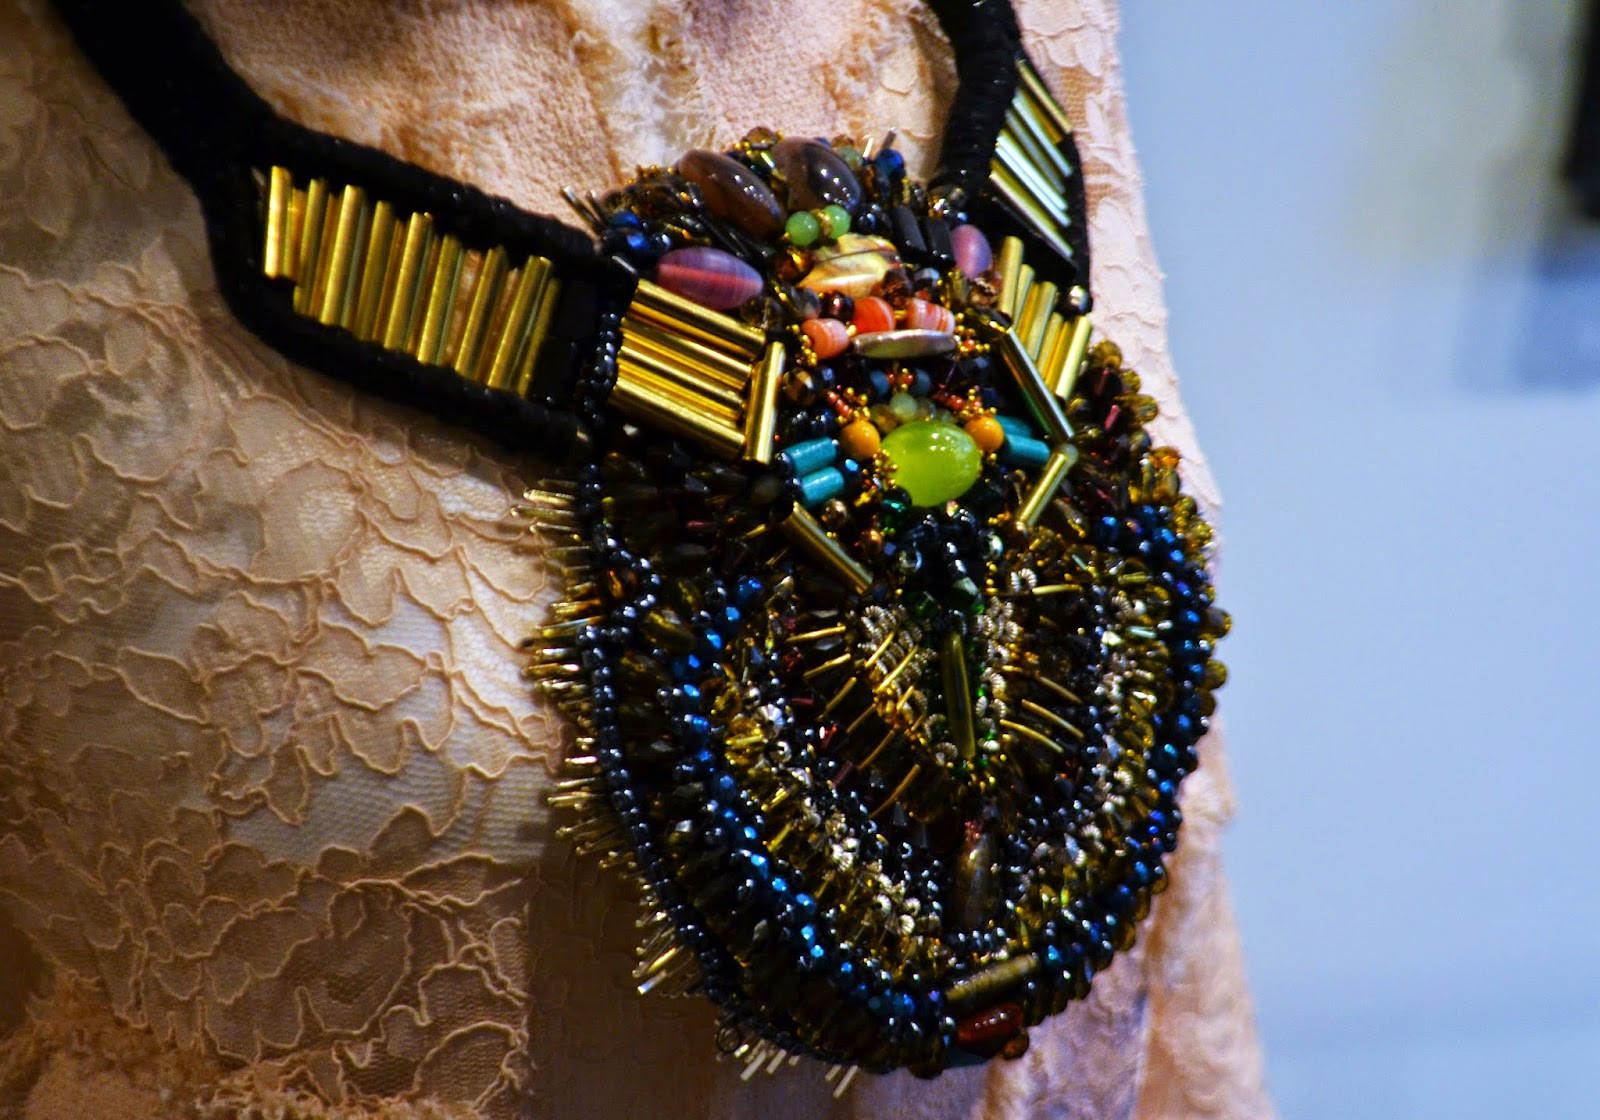 another intricate necklace with hundreds of beads